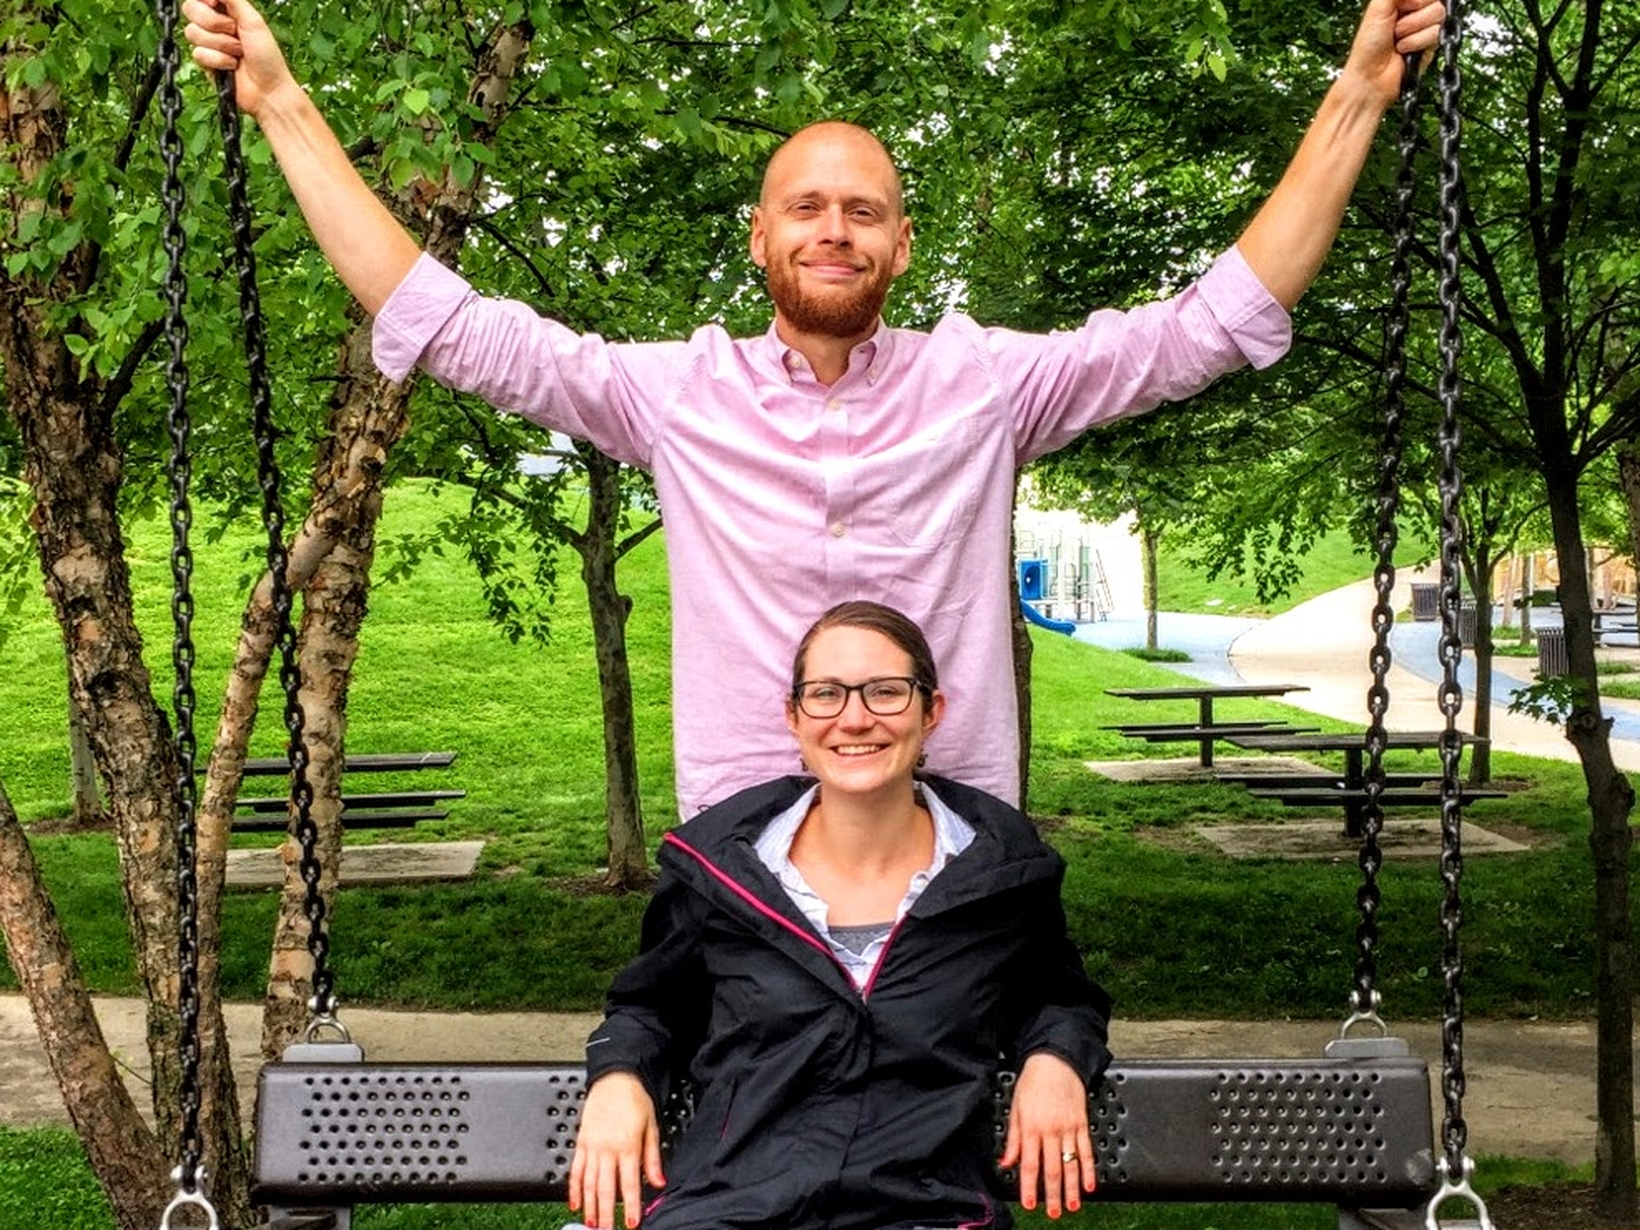 Dustin & meghan & Meghan from Columbus, Ohio, United States